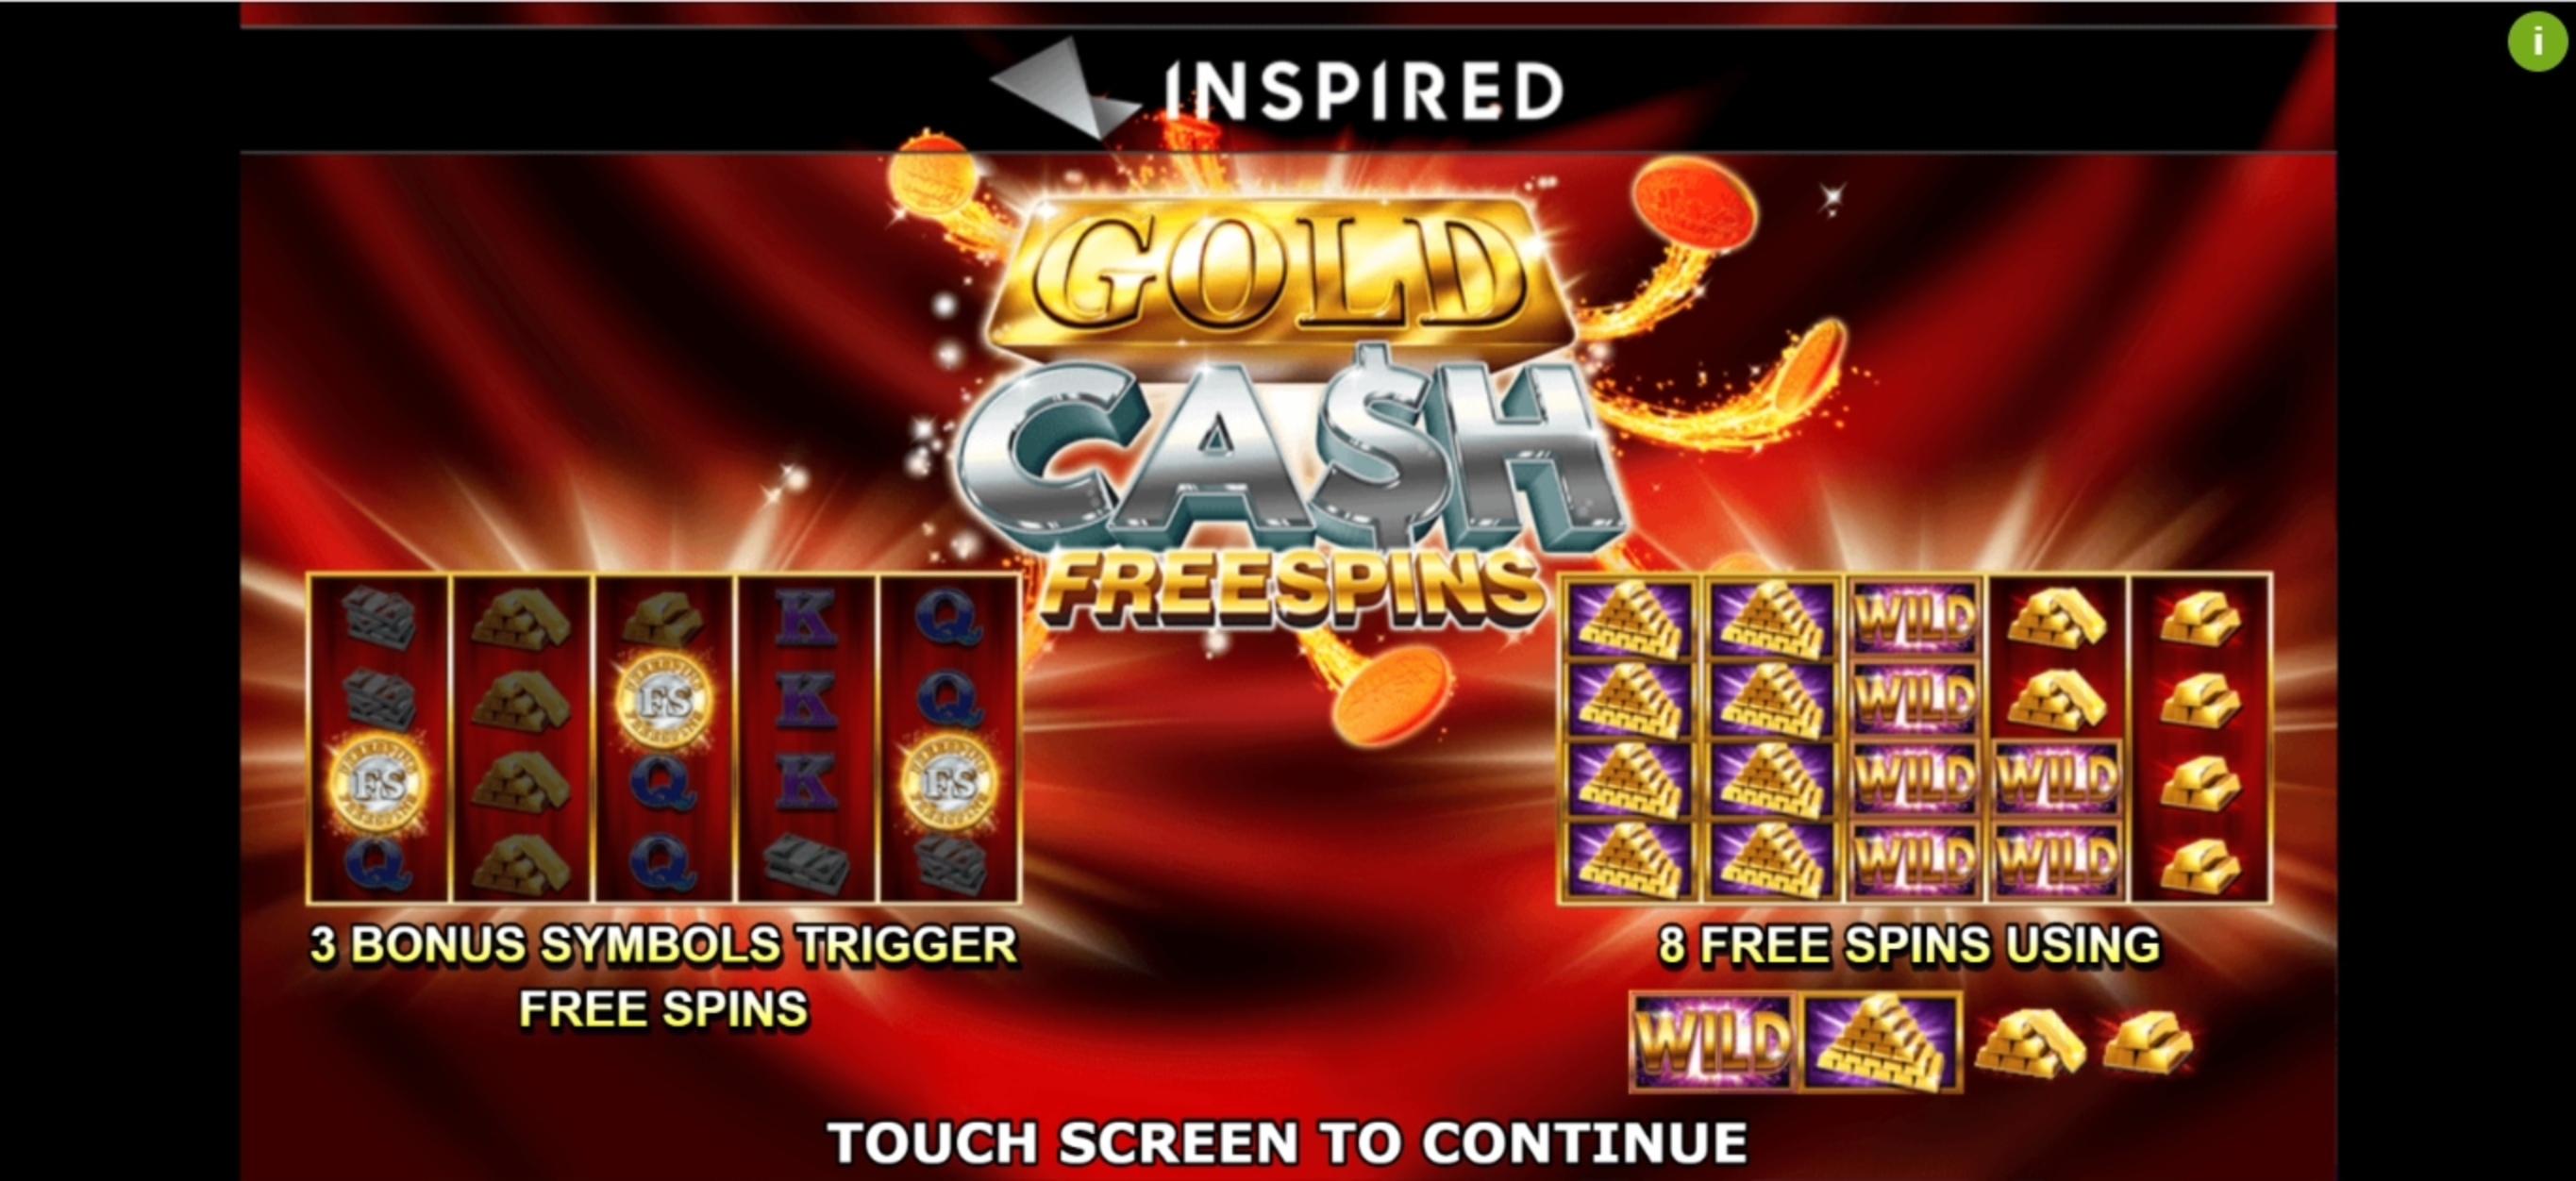 Play Gold Cash Free Spins Free Casino Slot Game by Inspired Gaming